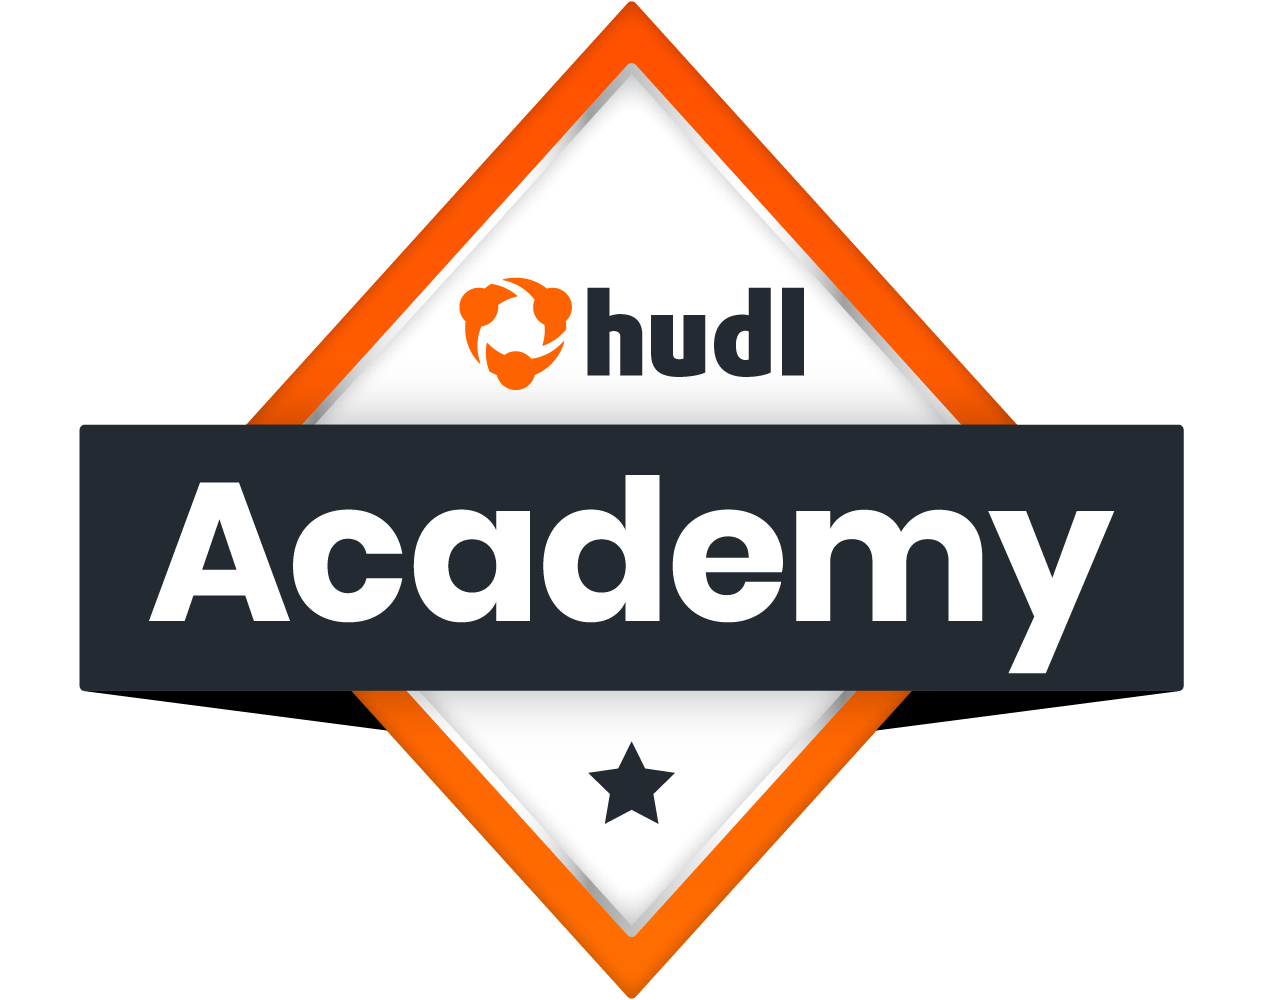 Hudl Academy Badge